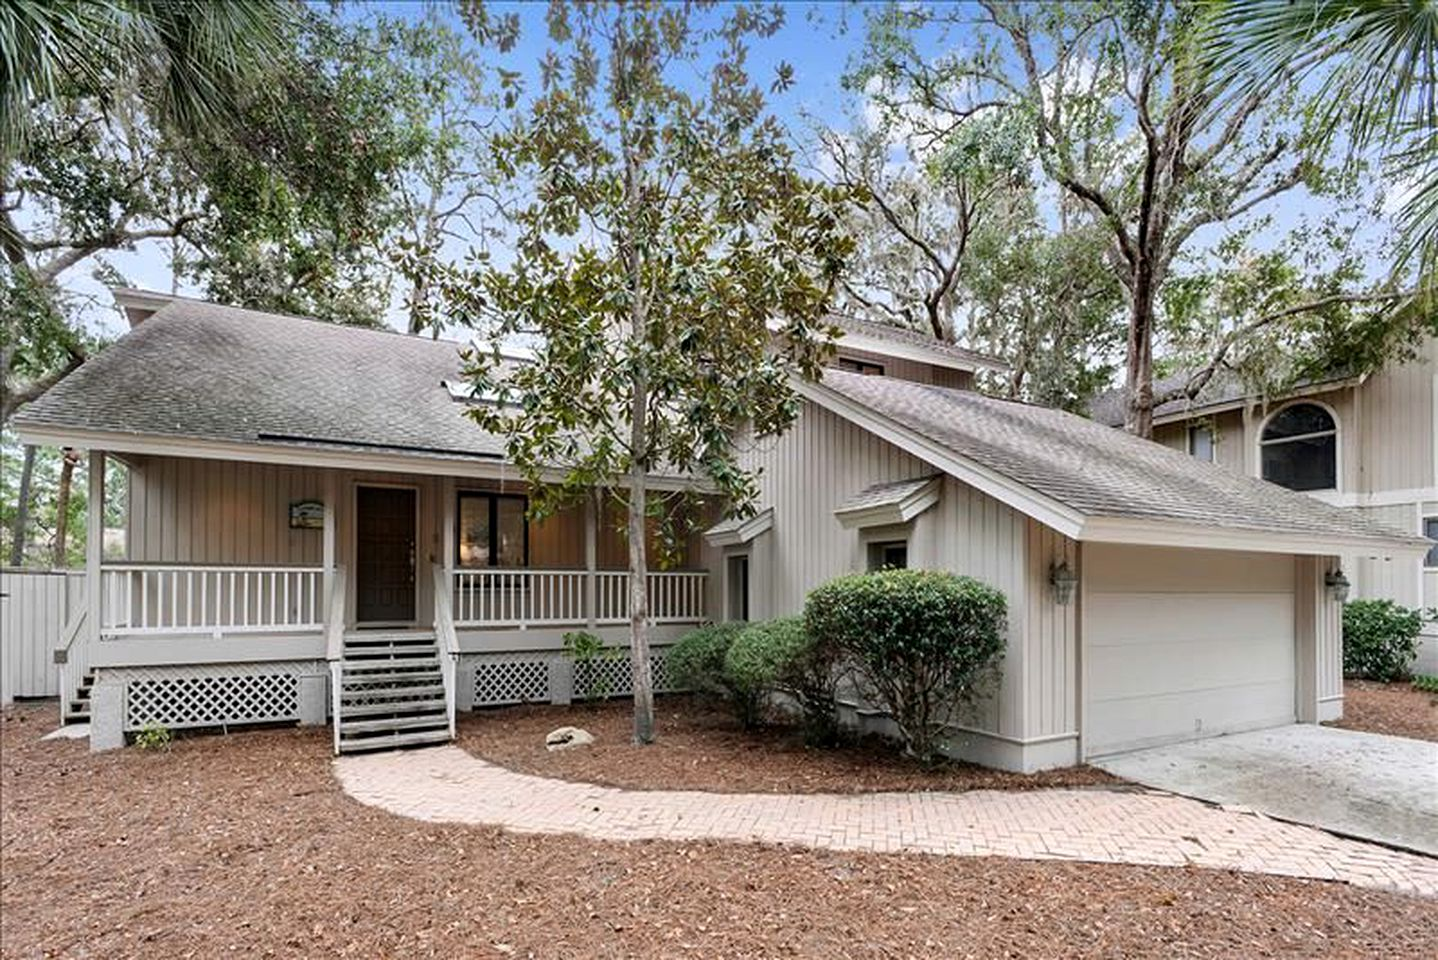 Vacation Rentals (Hilton Head, South Carolina, United States)